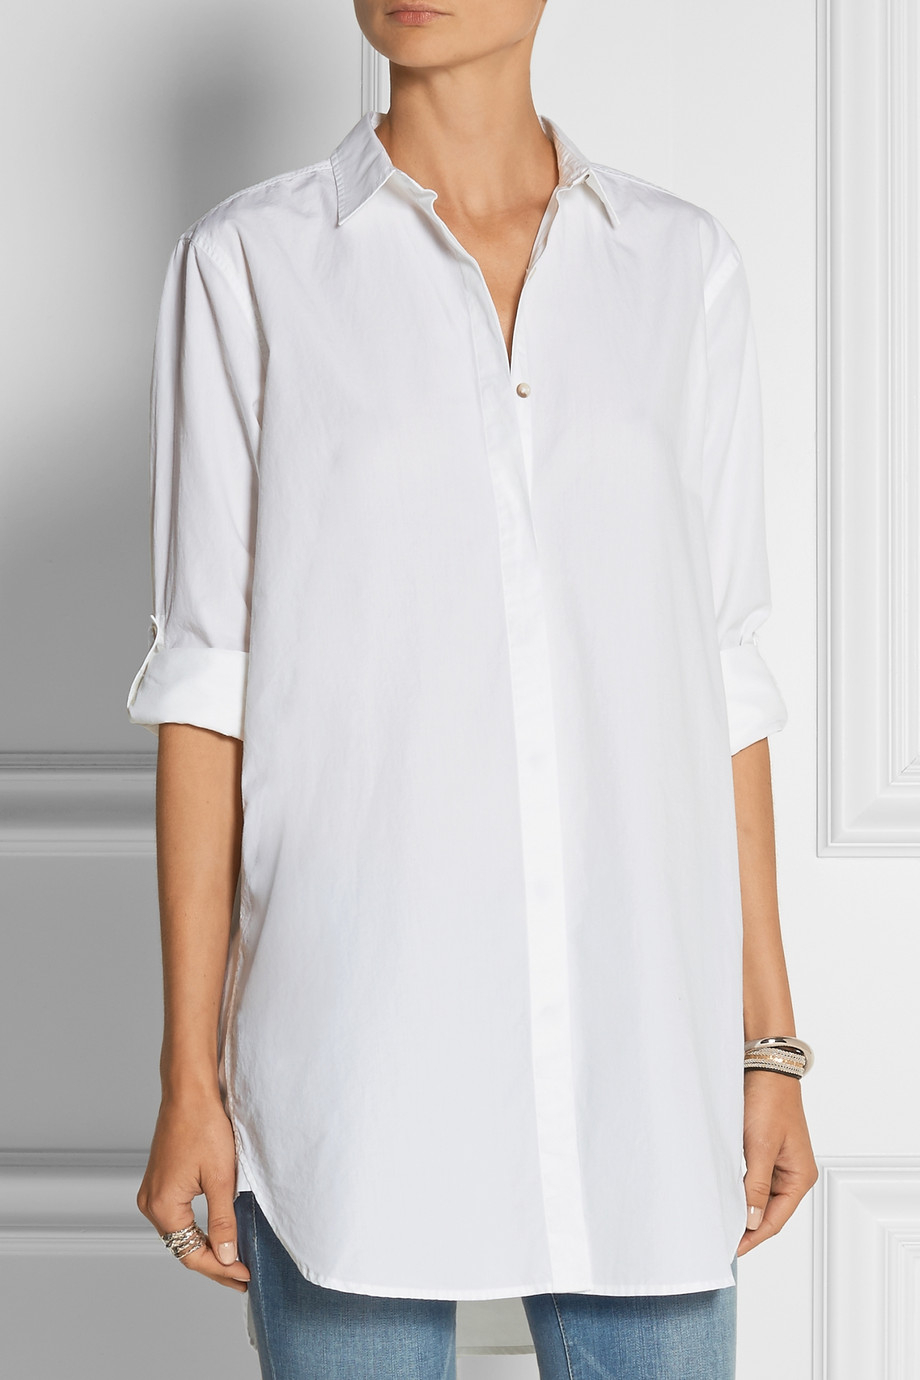 Oversized shirt in a cotton weave with a wide collar, classic front and chest pocket. Yoke at the back, long sleeves with buttoned cuffs, and a rounded hem.